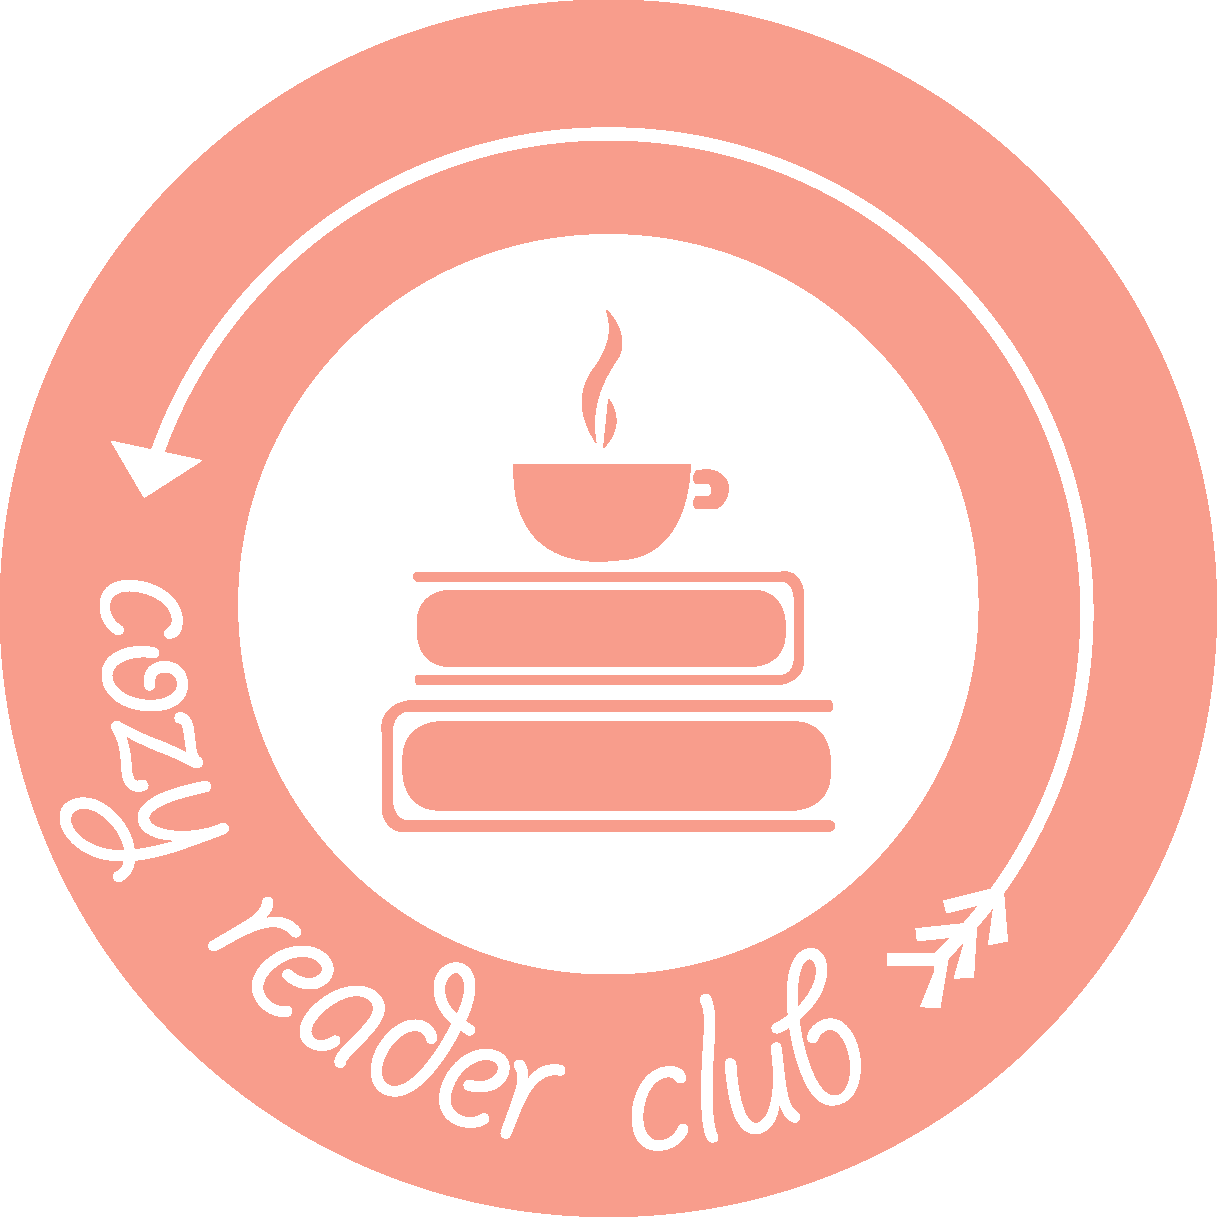 Cozy Reader Club Subscription Box Sunday Coupon: Save 20% on any subscription!